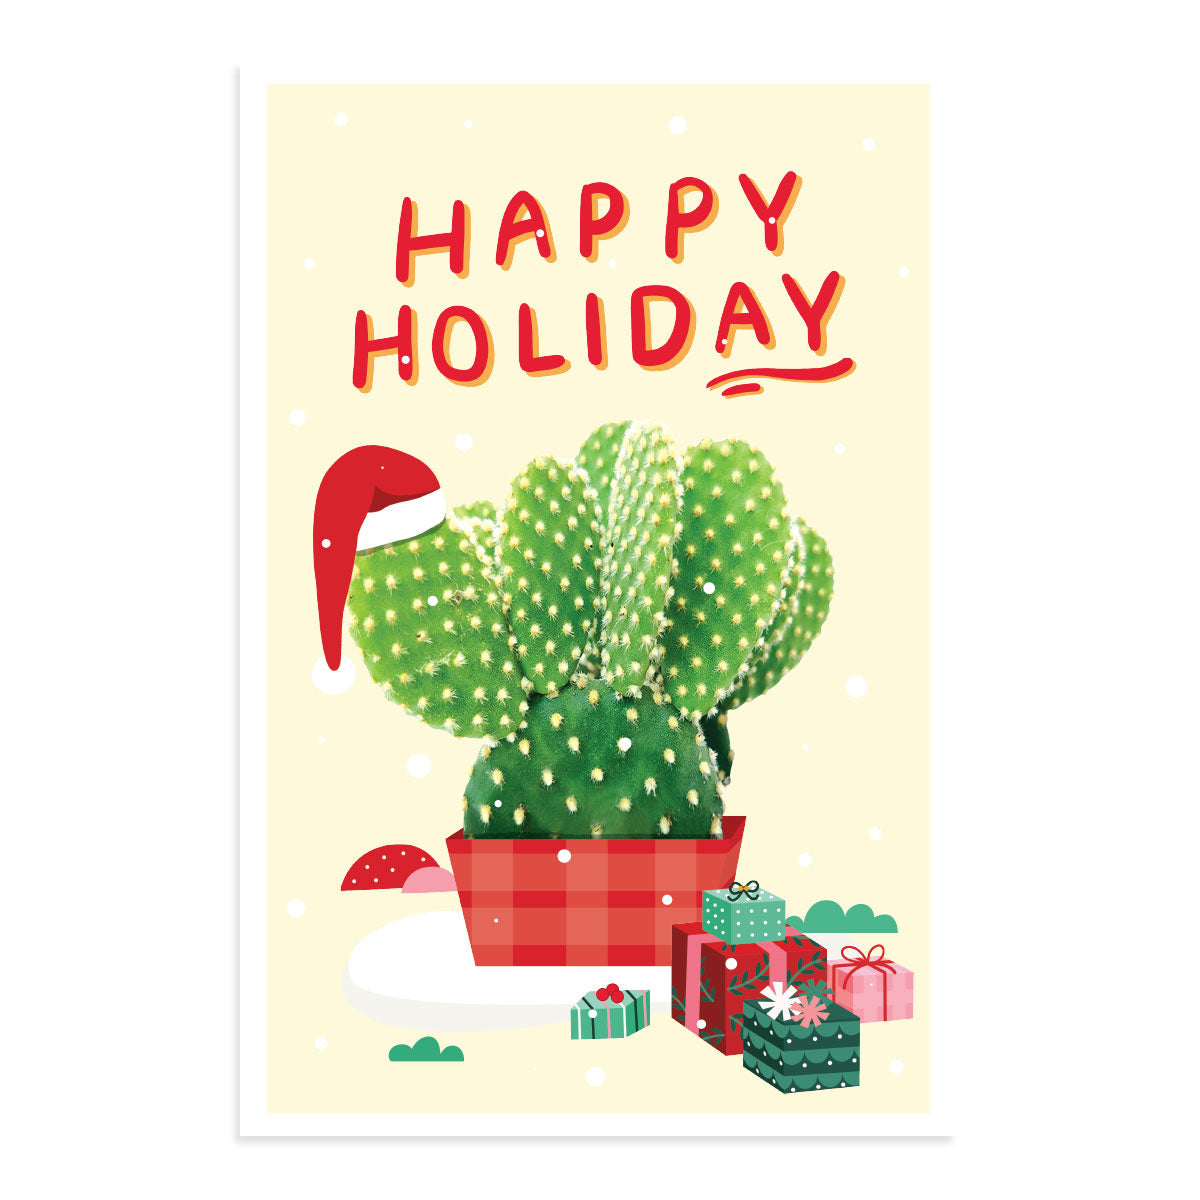 Succulent Happy Holiday Card for sale, Cactus Holiday Greeting Card, Succulents Greeting Card, Succulents Gift Ideas